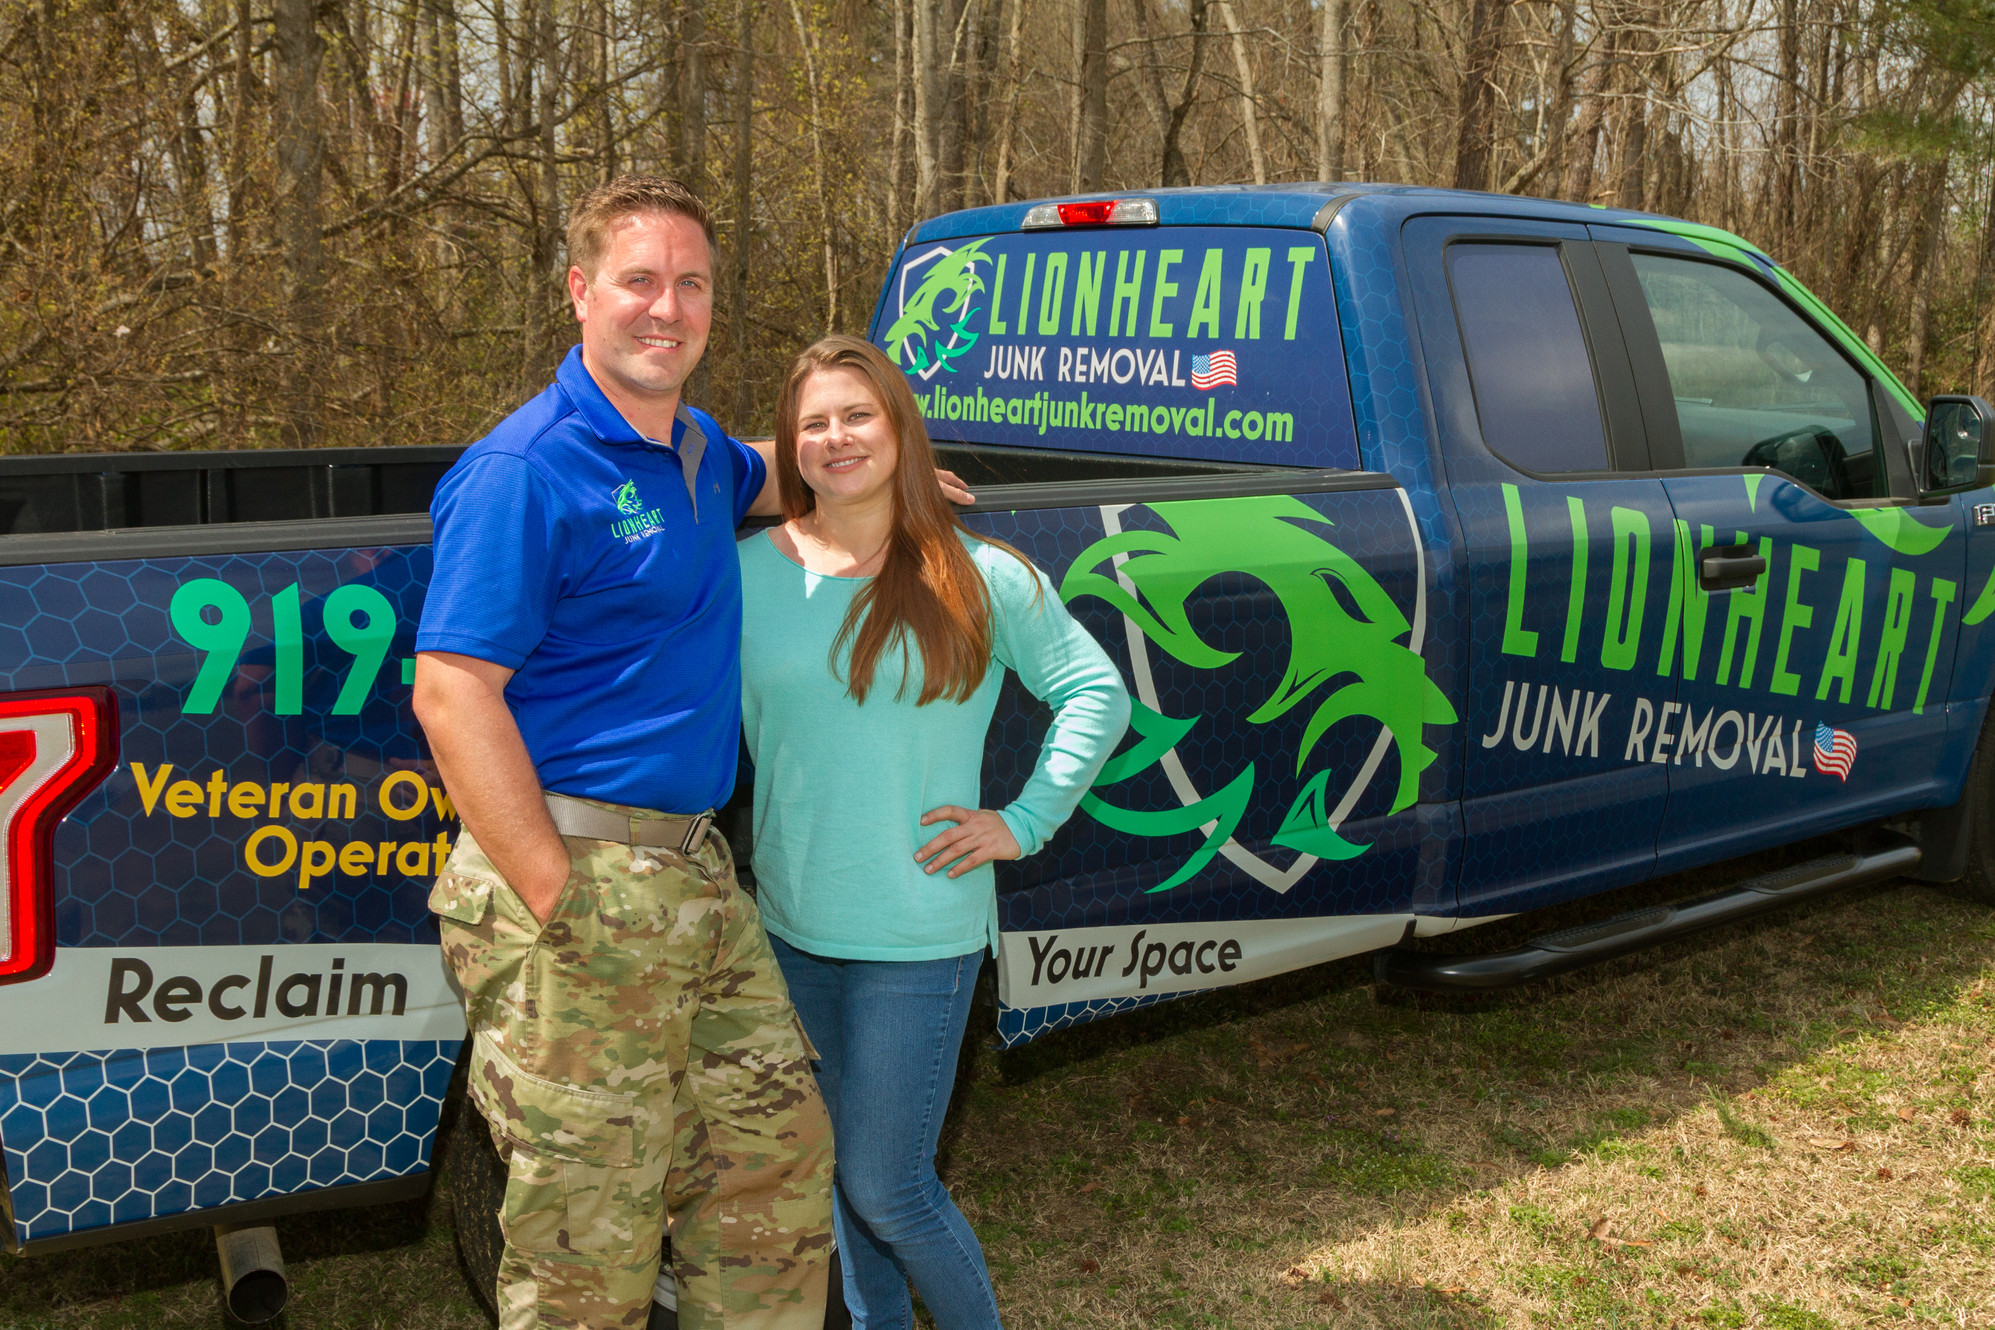 Veteran Owned Junk Removal In Raleigh Lionheart